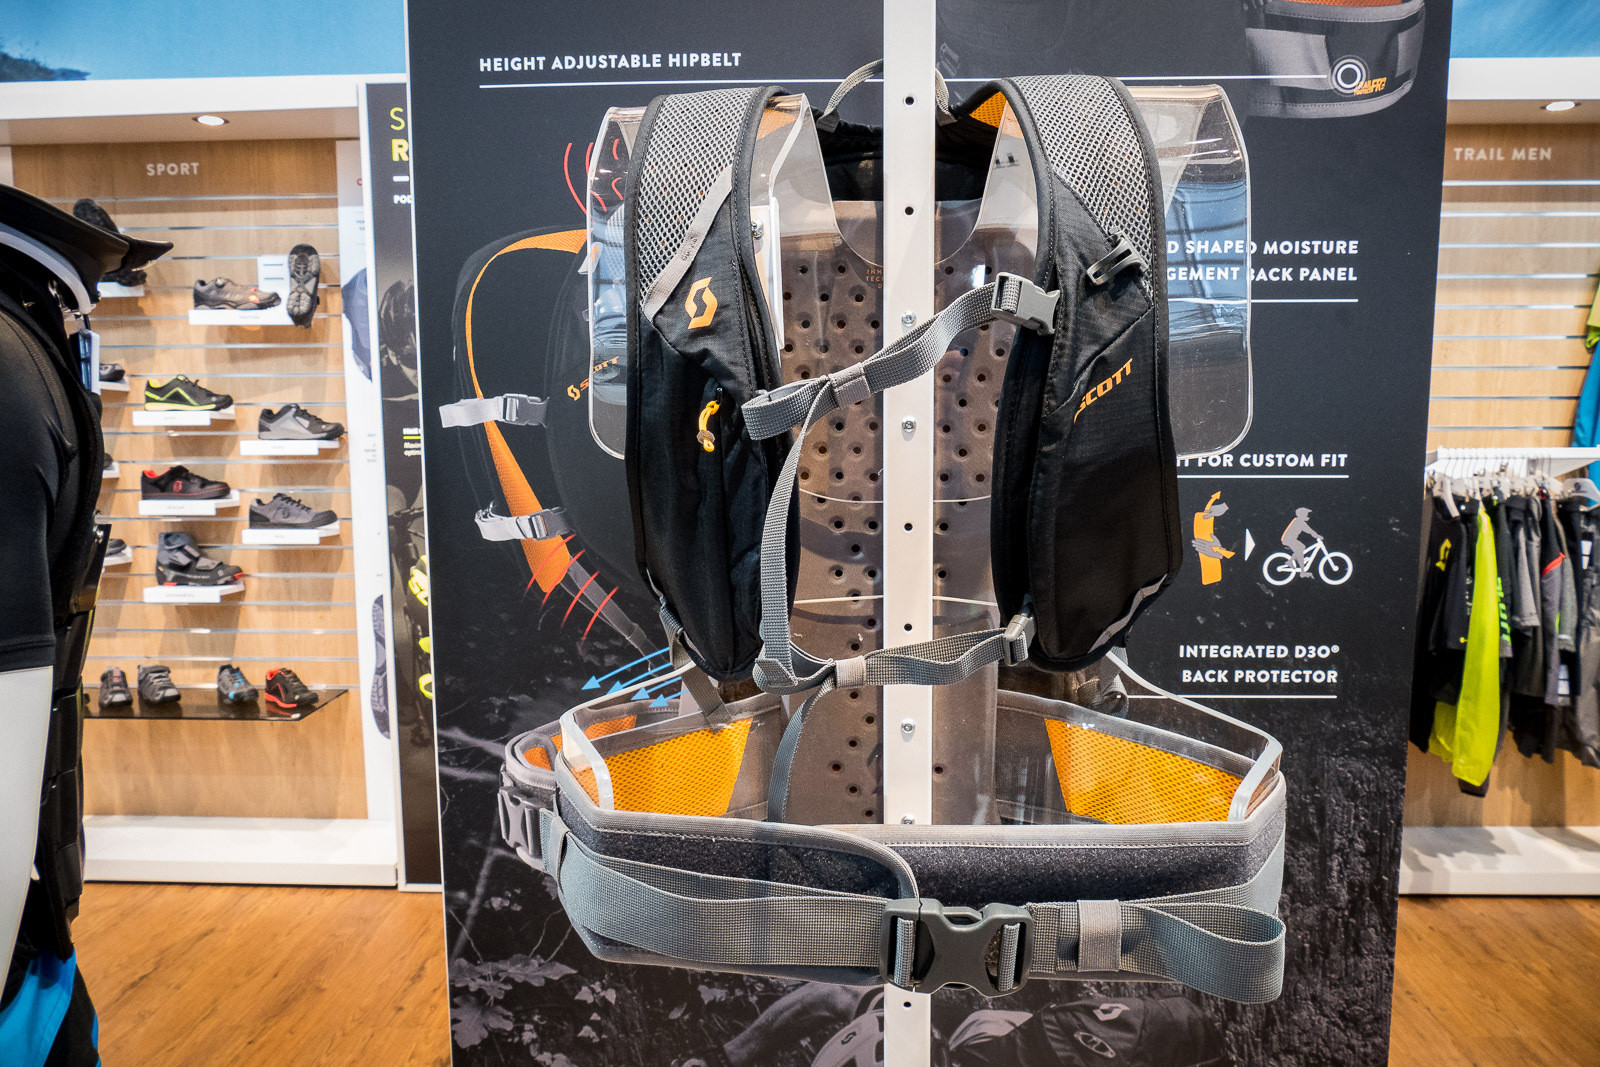 Scott Trail Protect FR '16 Pack - 2016 Mountain Bike Apparel & Protection at Eurobike - Mountain Biking Pictures - Vital MTB